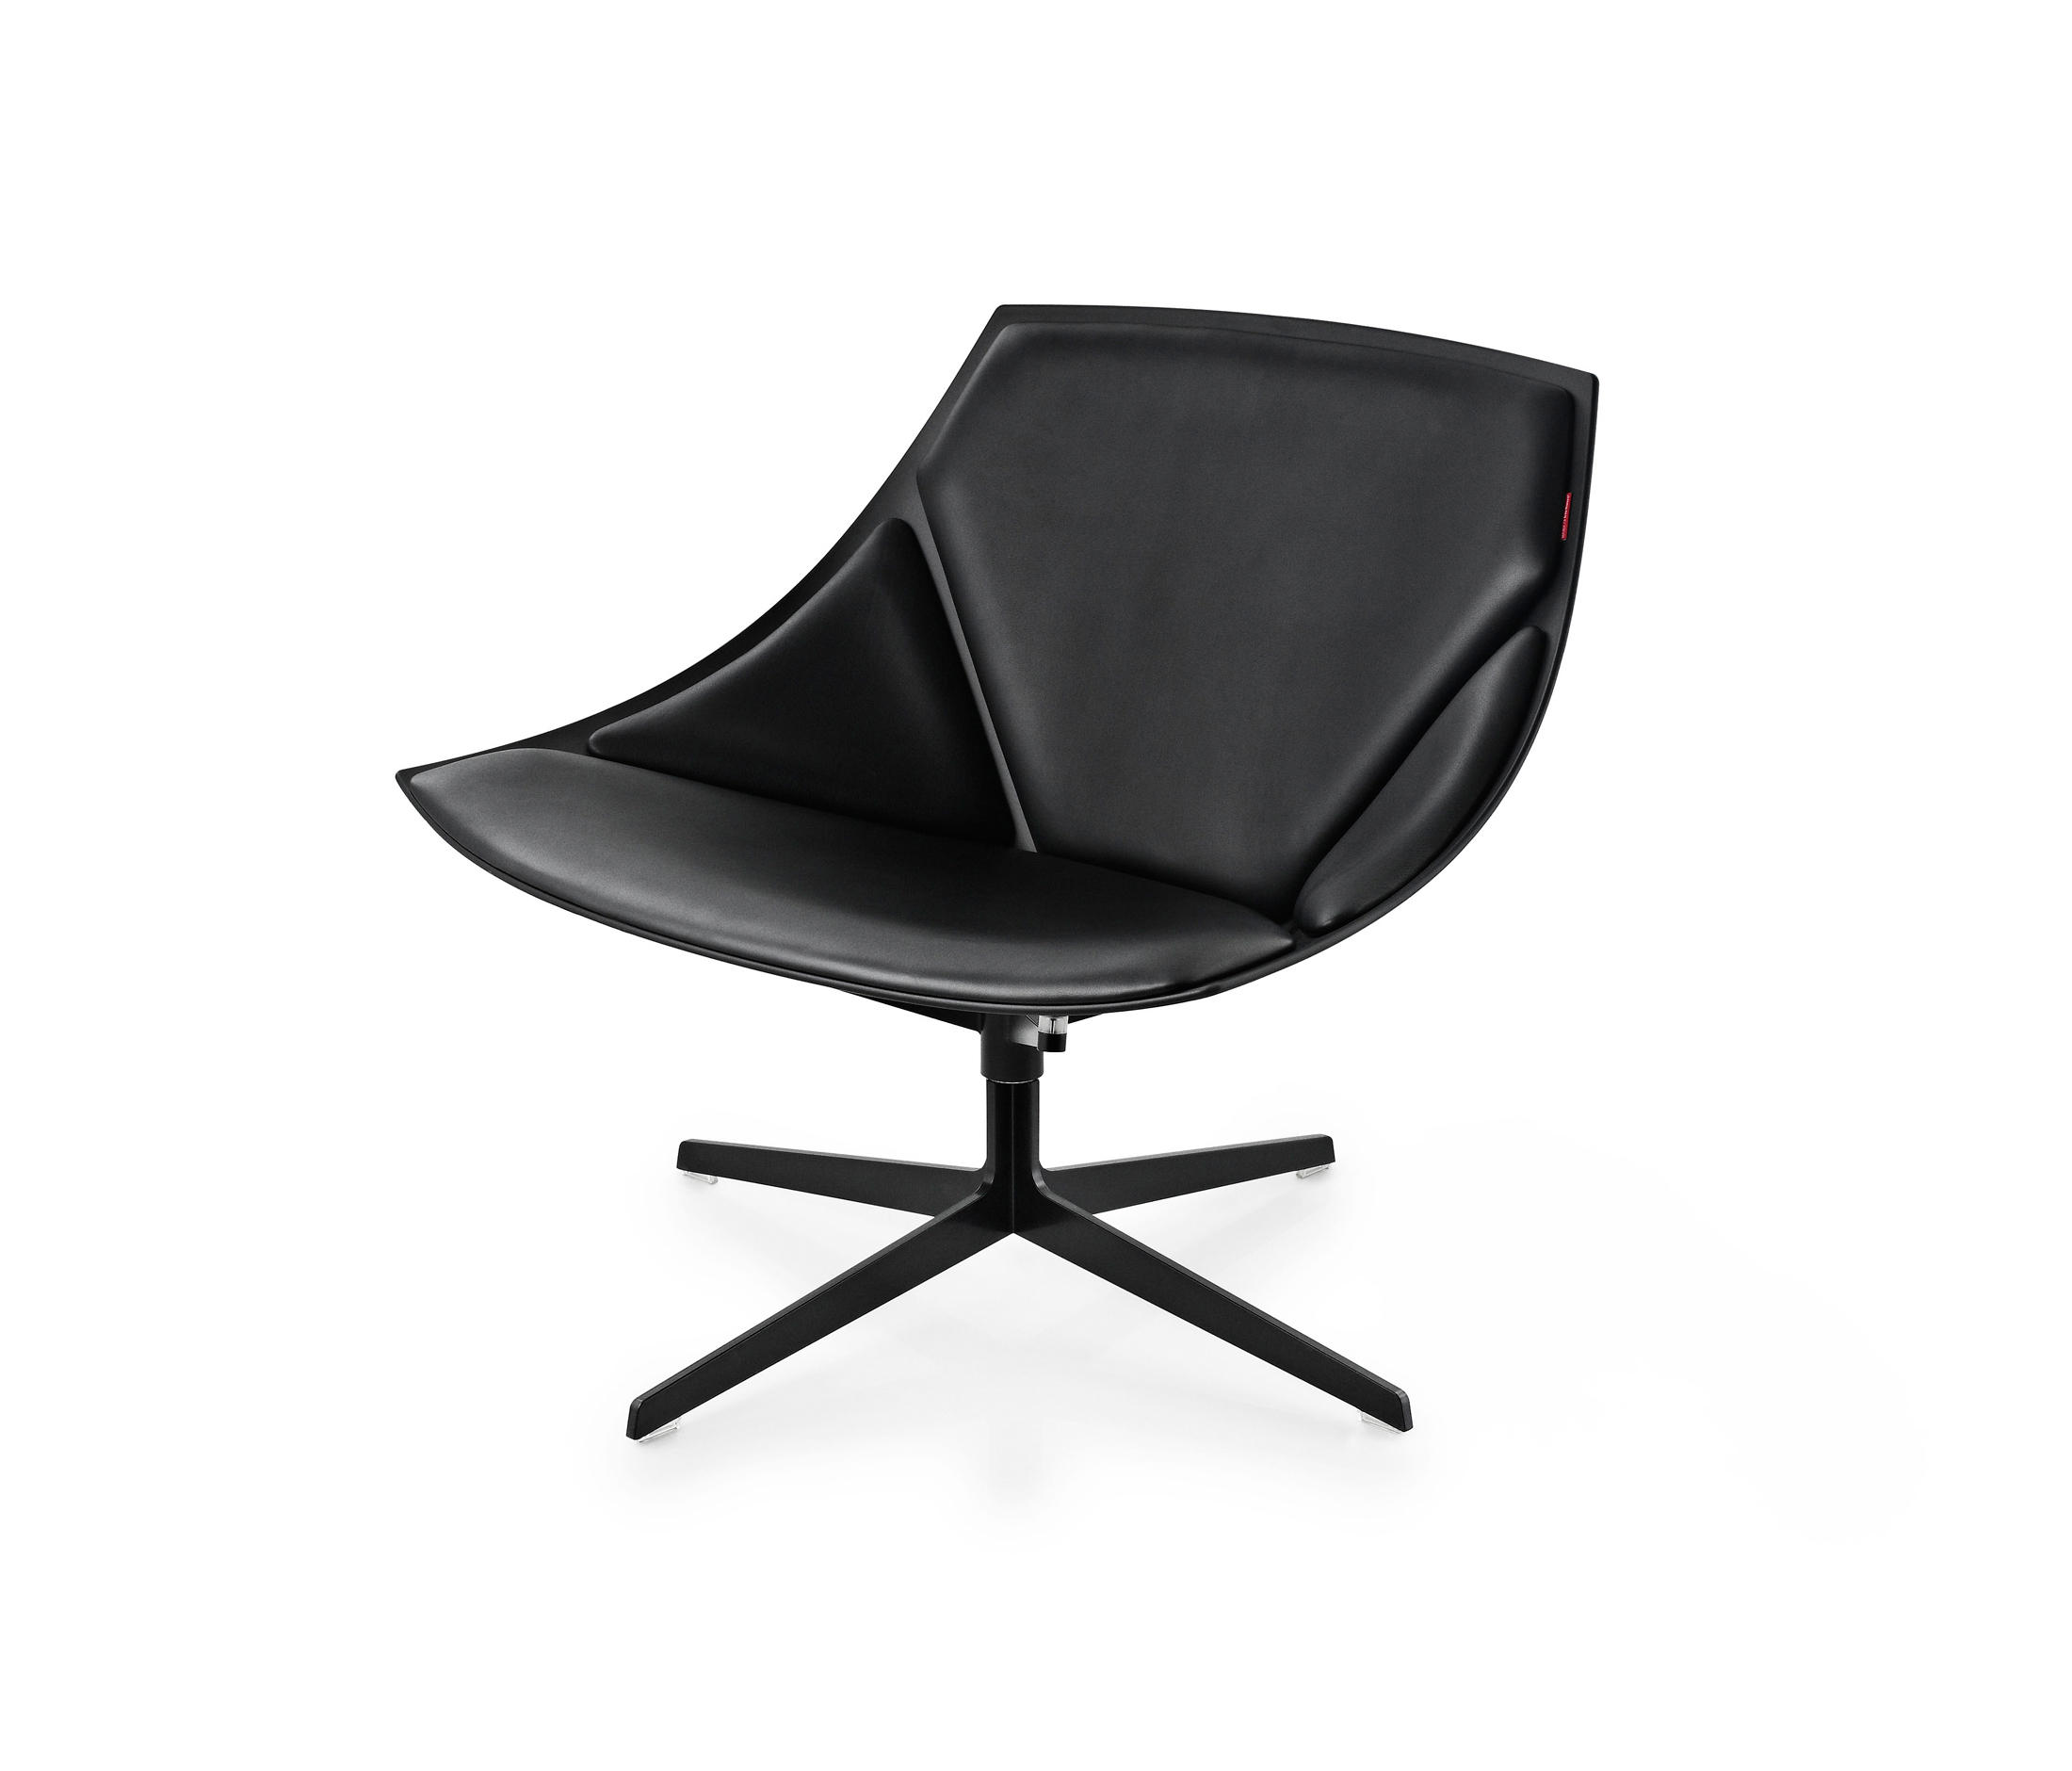 SPACE™ Lounge chairs from Fritz Hansen